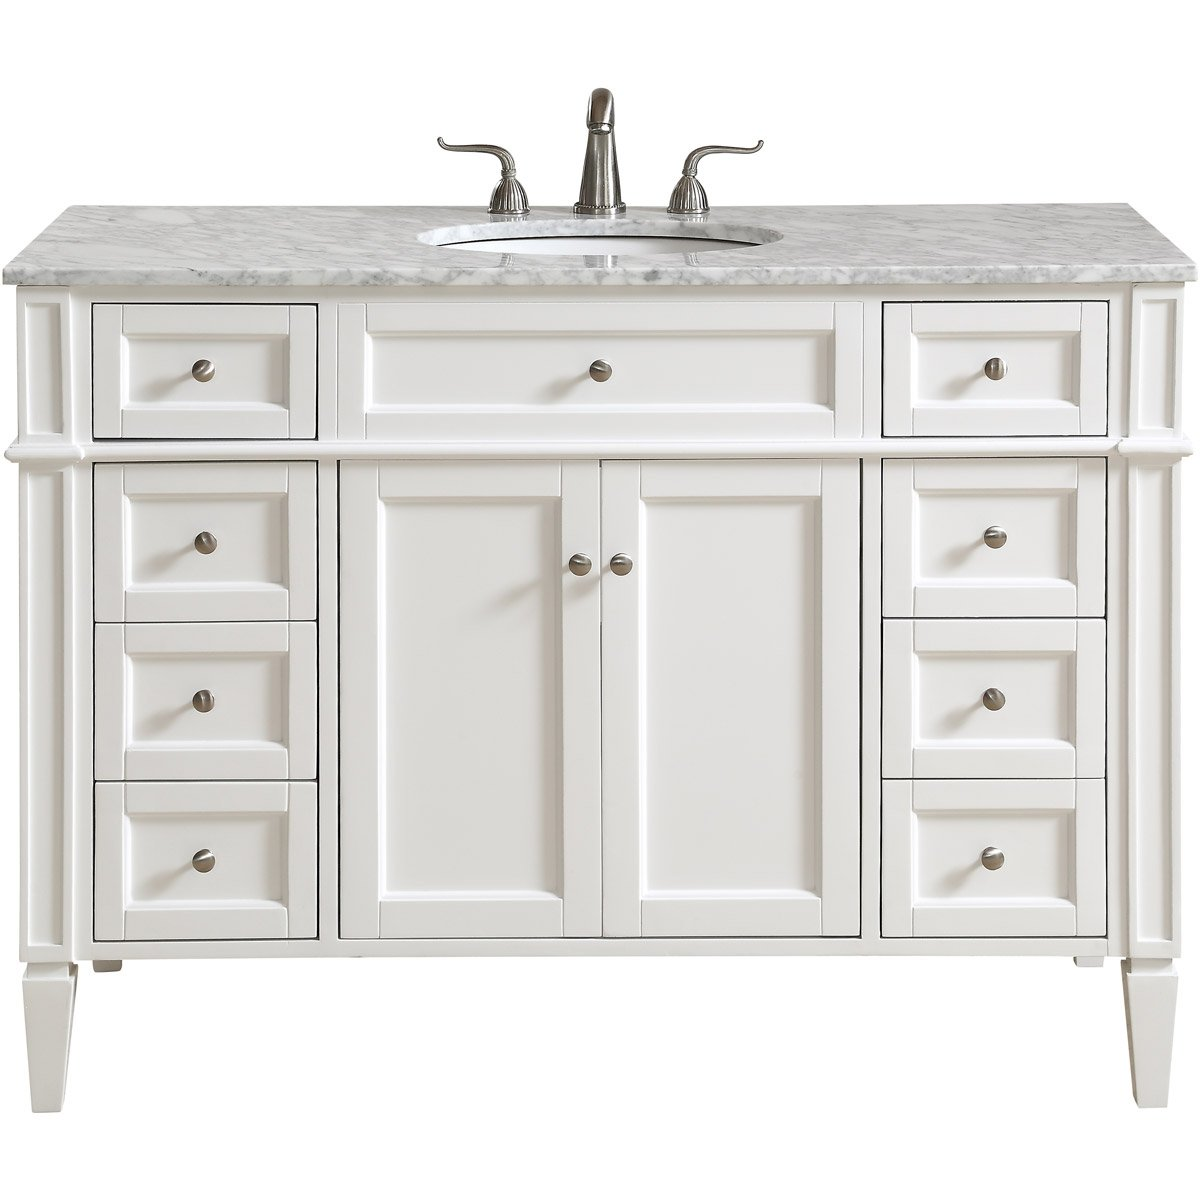 Park Avenue 48 X 35 8 Drawer 2 Door Vanity Cabinet - White Finish (Vf12548Wh) Vanity